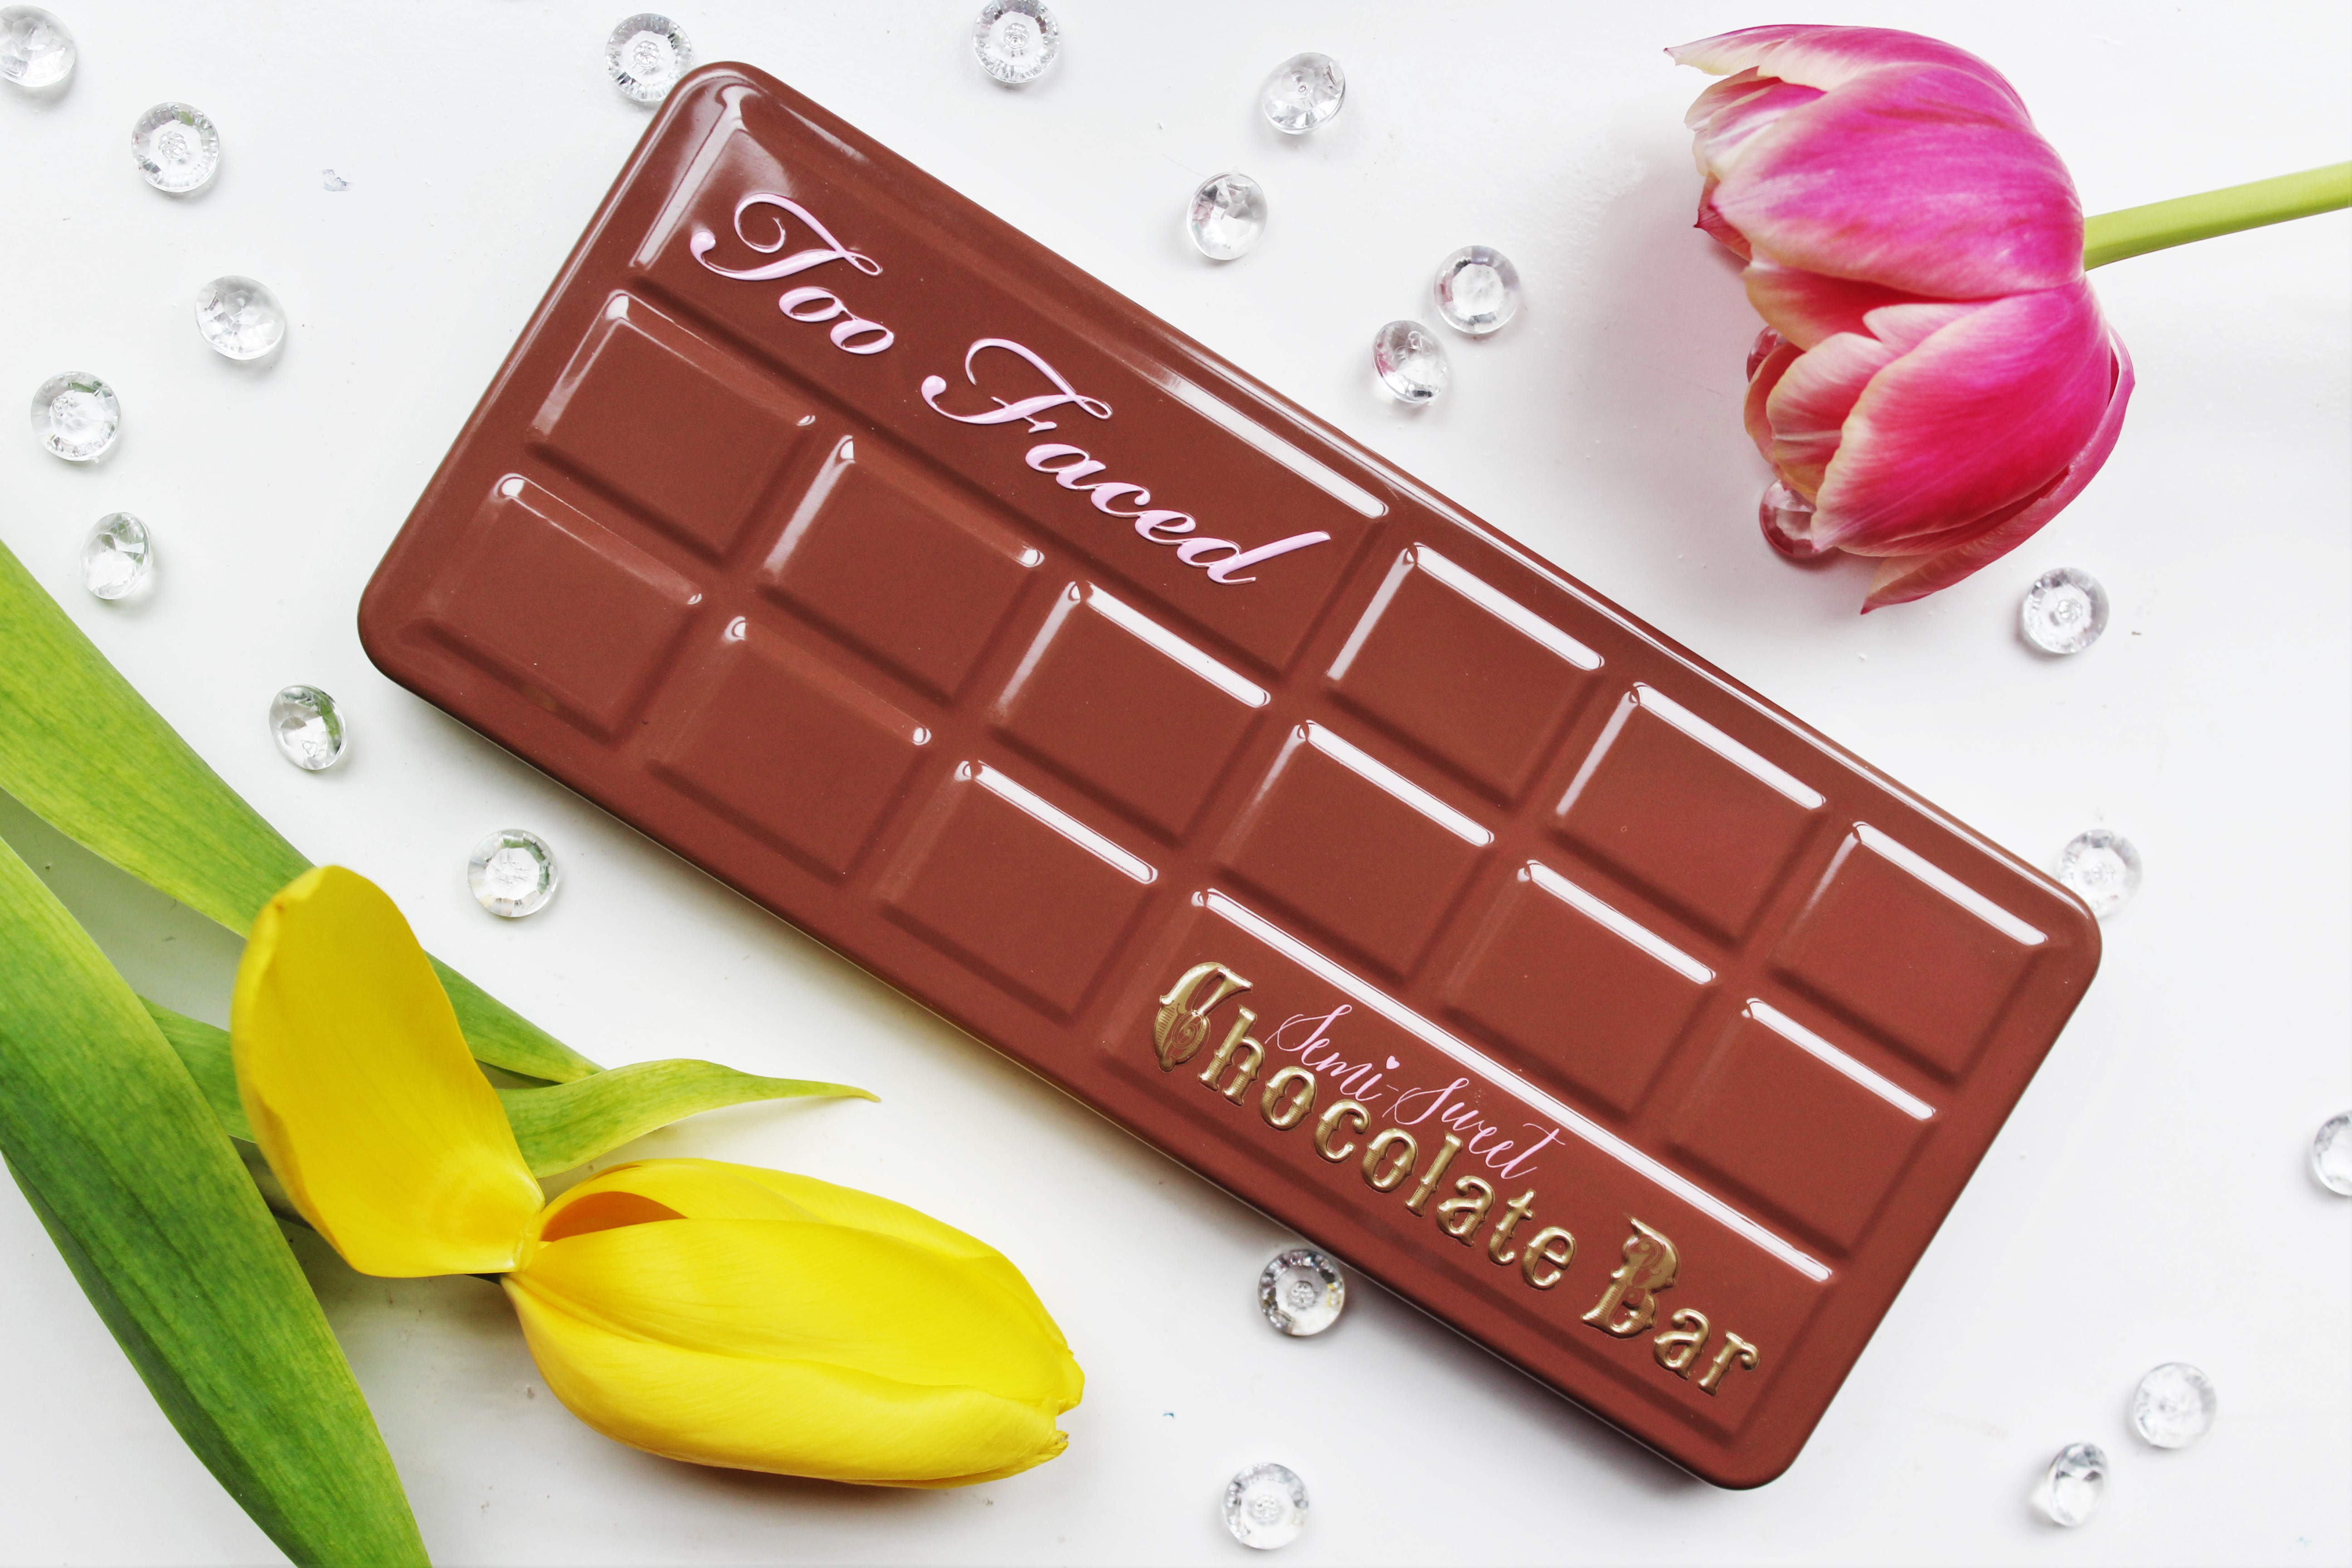 Too Faced Semi-Sweet Chocolate Bar | review & look